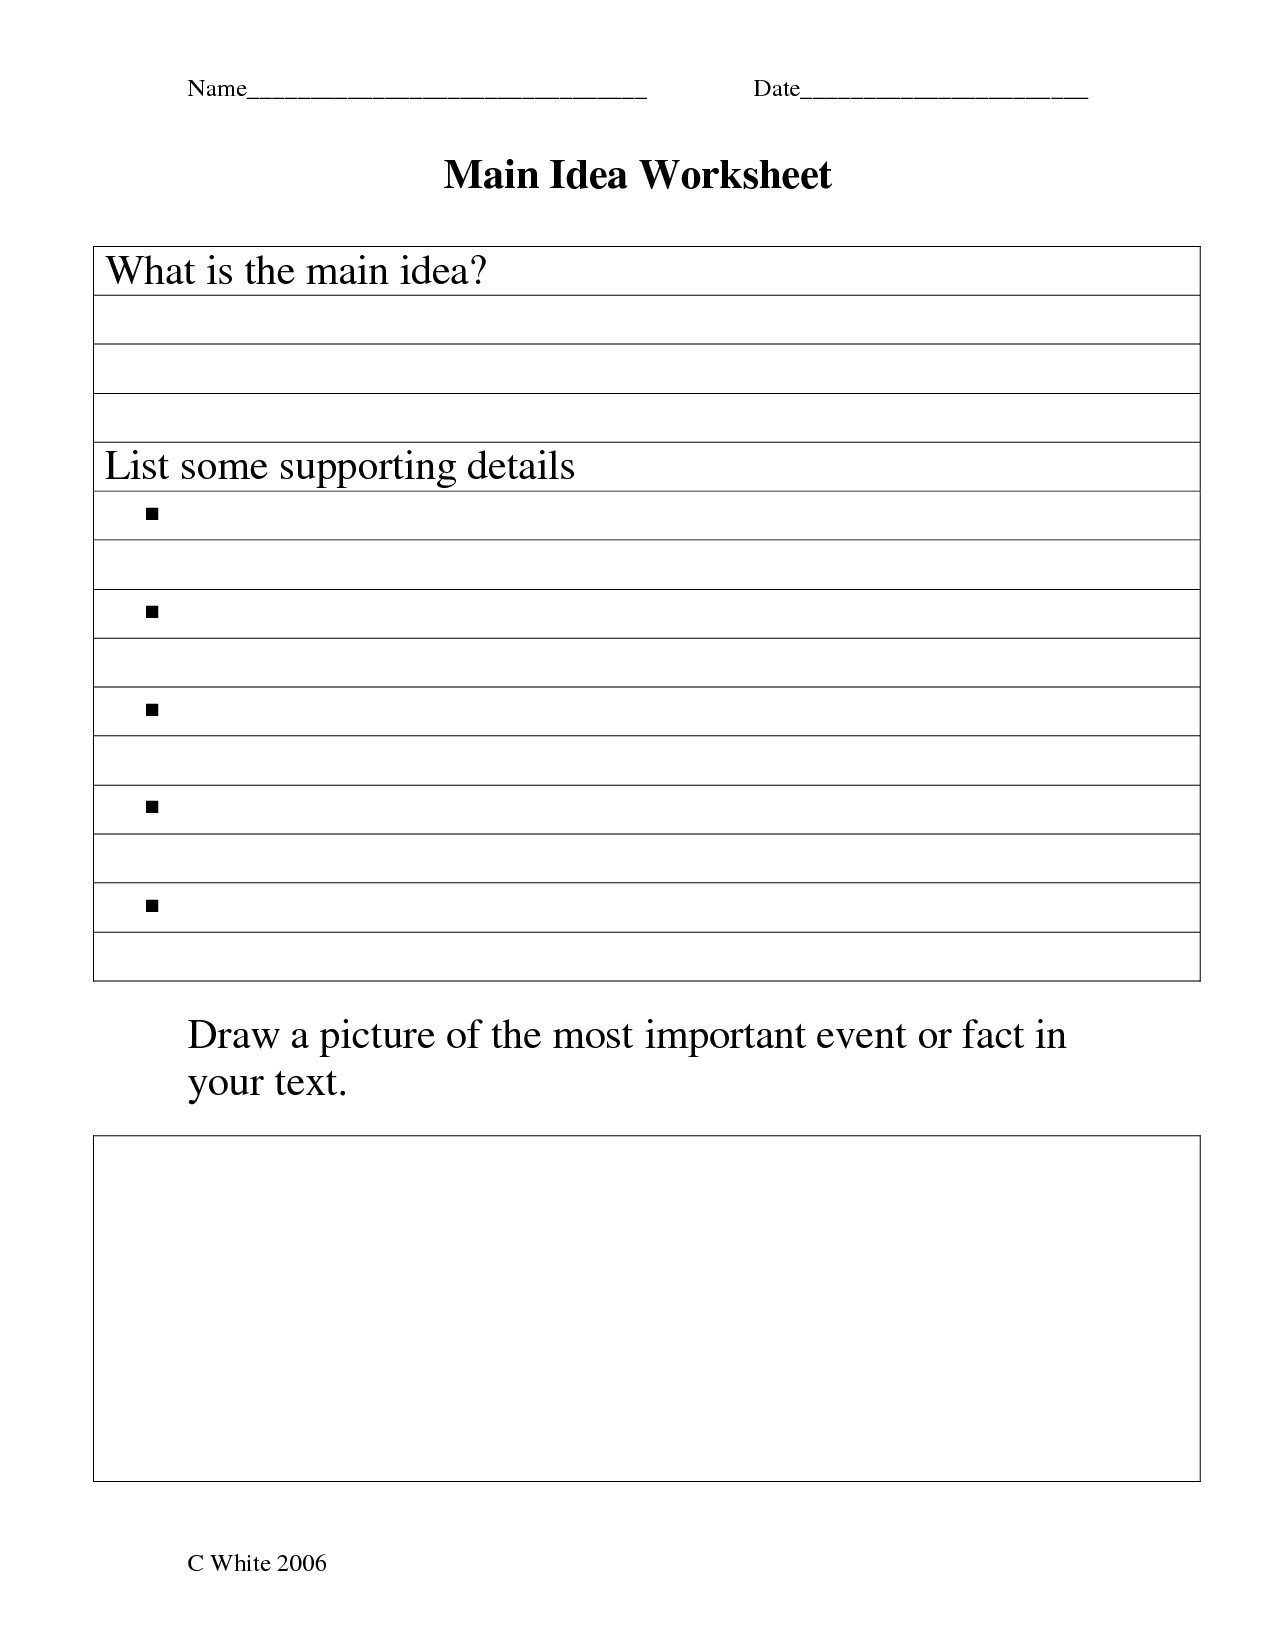 Free Worksheet Free Printable Main Idea Worksheets 17 best images about main idea on pinterest graphic organizers common cores and exit slips